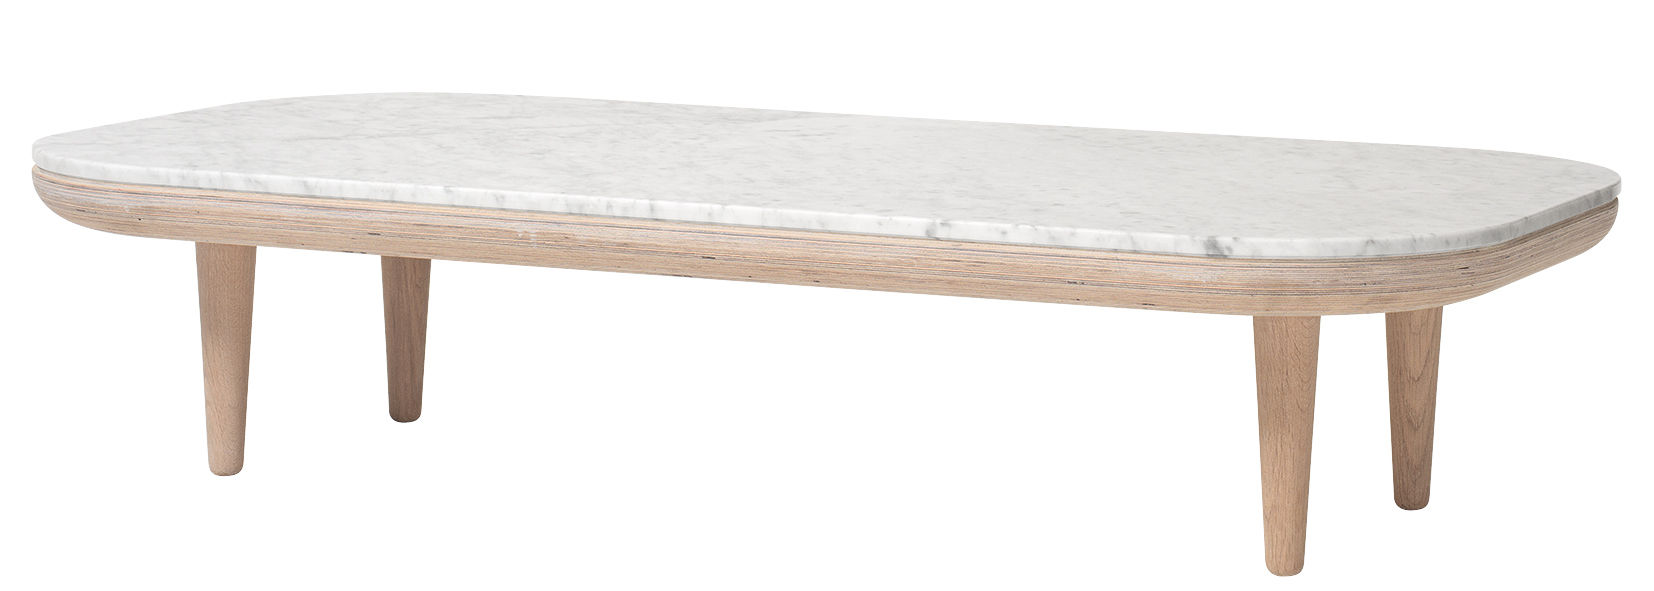 Furniture - Coffee Tables - FLY Coffee table by &tradition - White oak / White marble - Bleached oak, Carrare marble